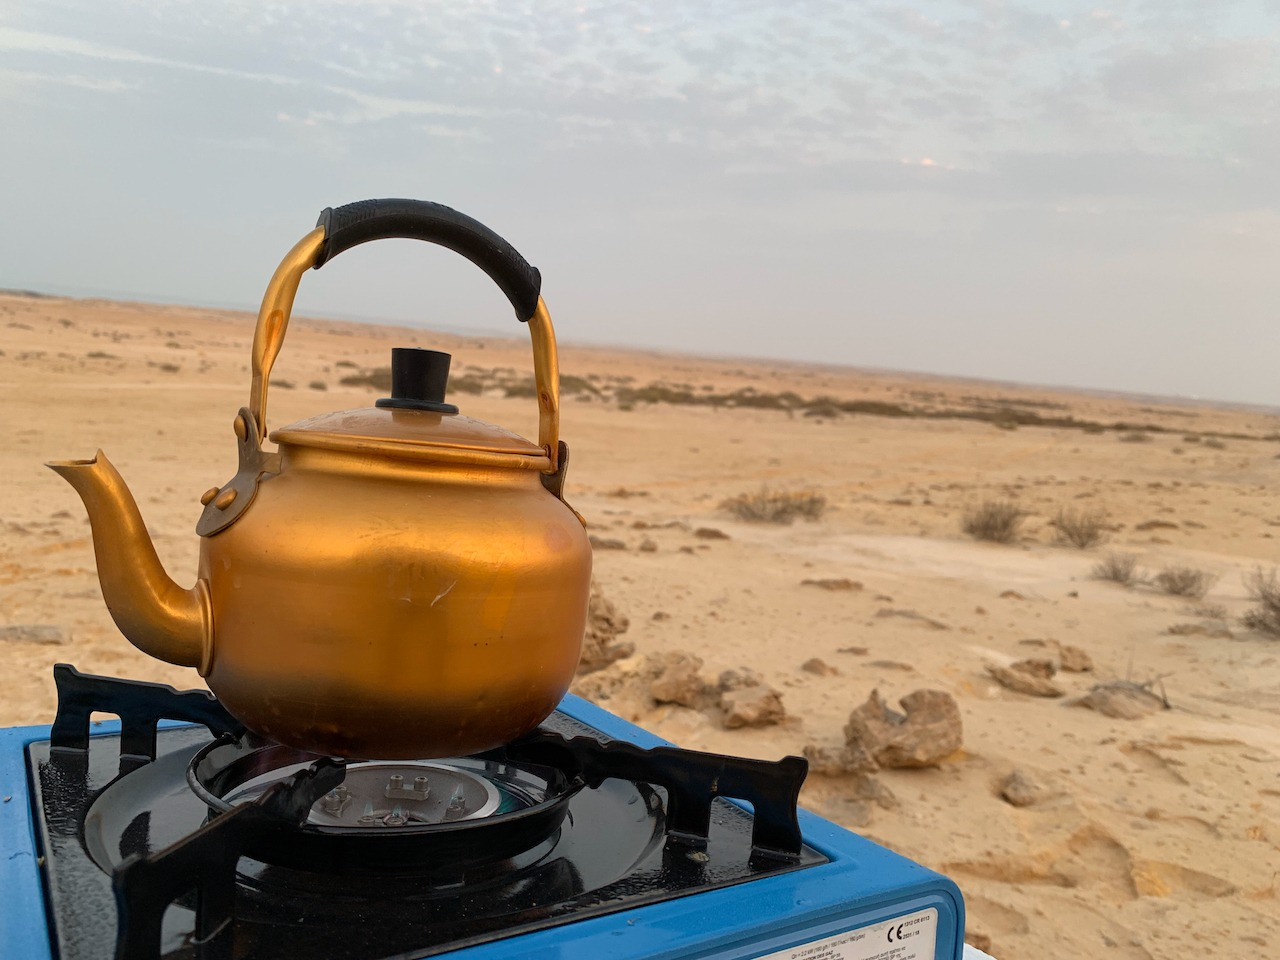 Camping kettle on gas cooker